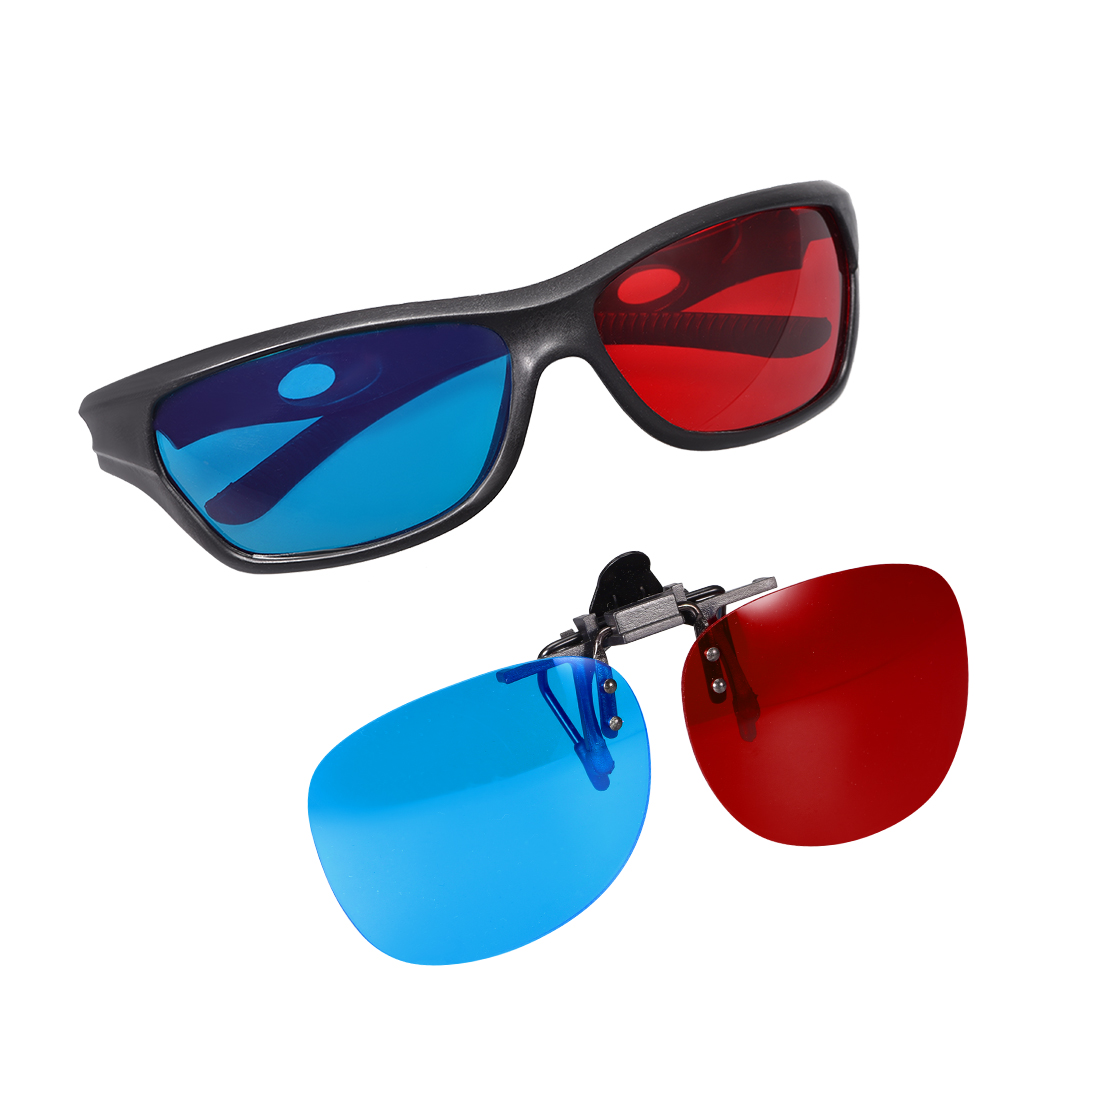 Red-Blue Anaglyph 3D Glasses and 3D Clip-on Glasses for Movies 2 set